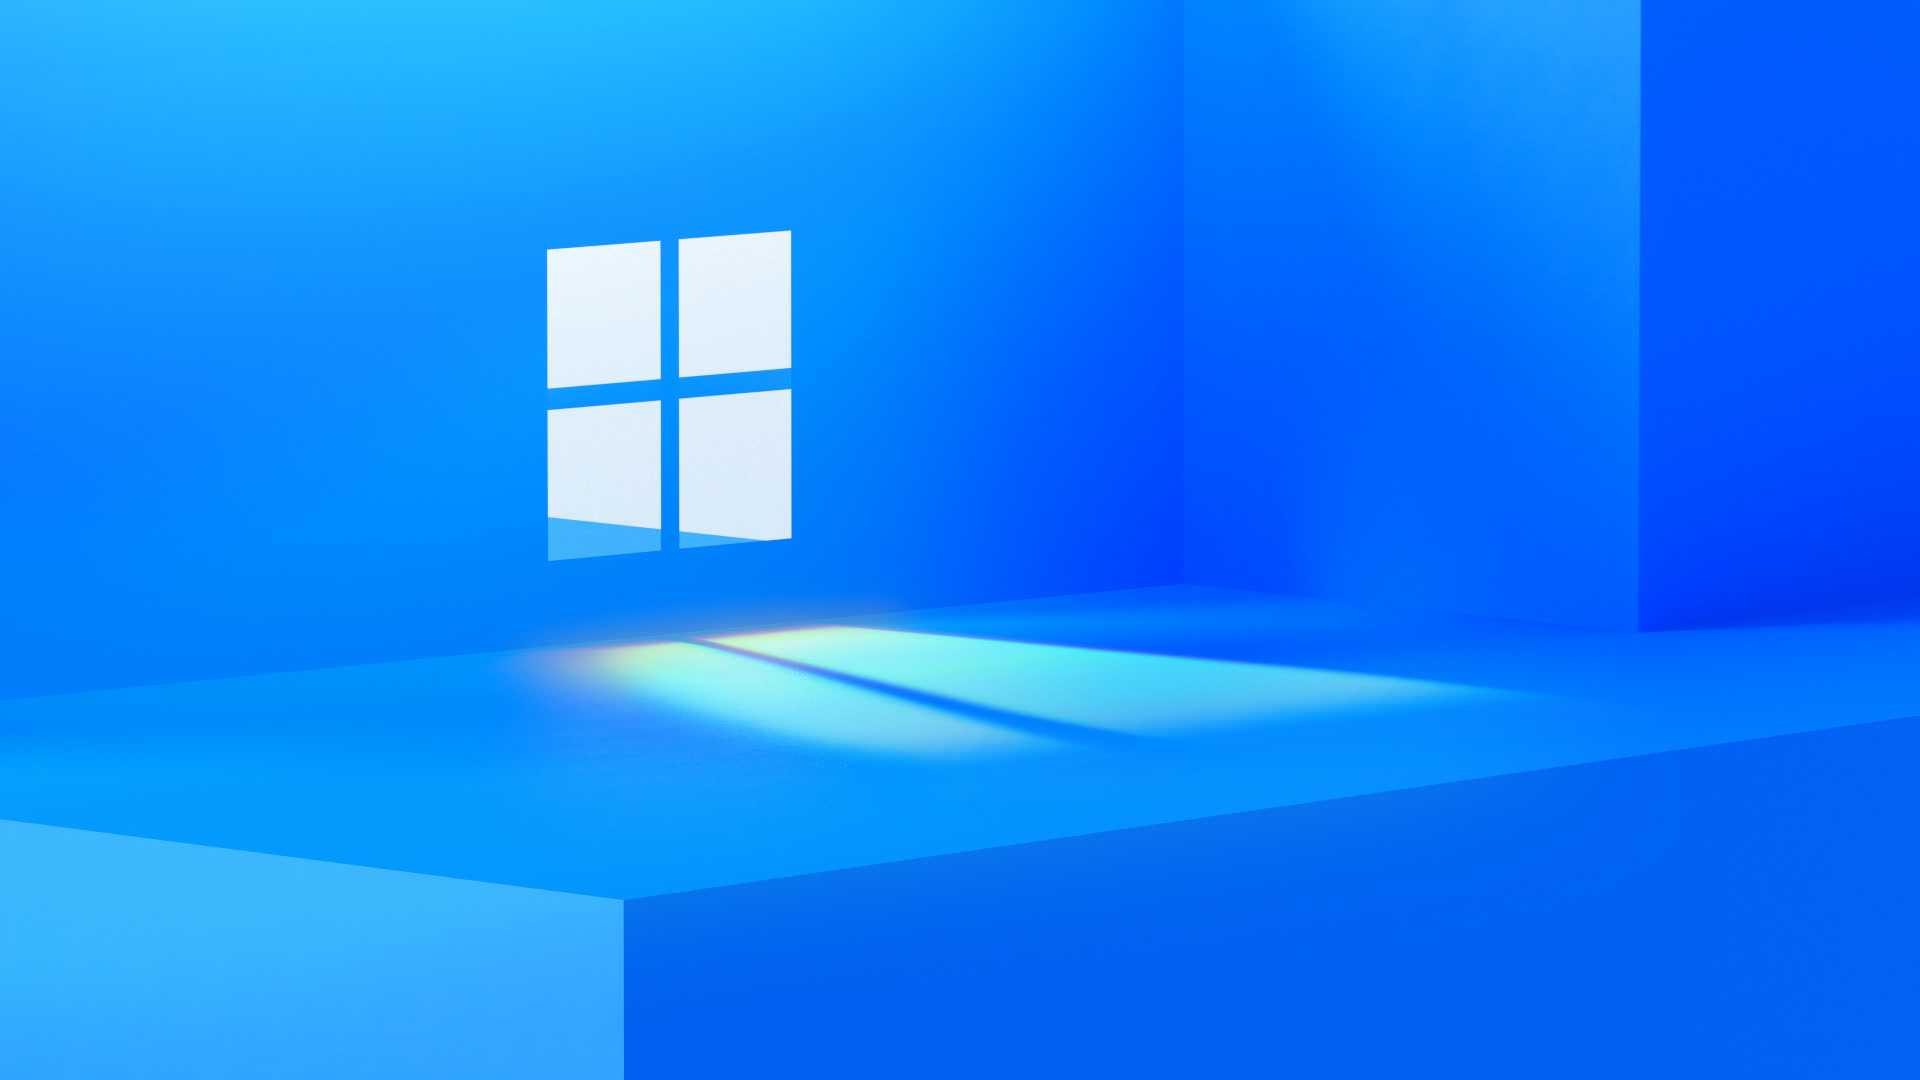 Microsoft is set to unveil what